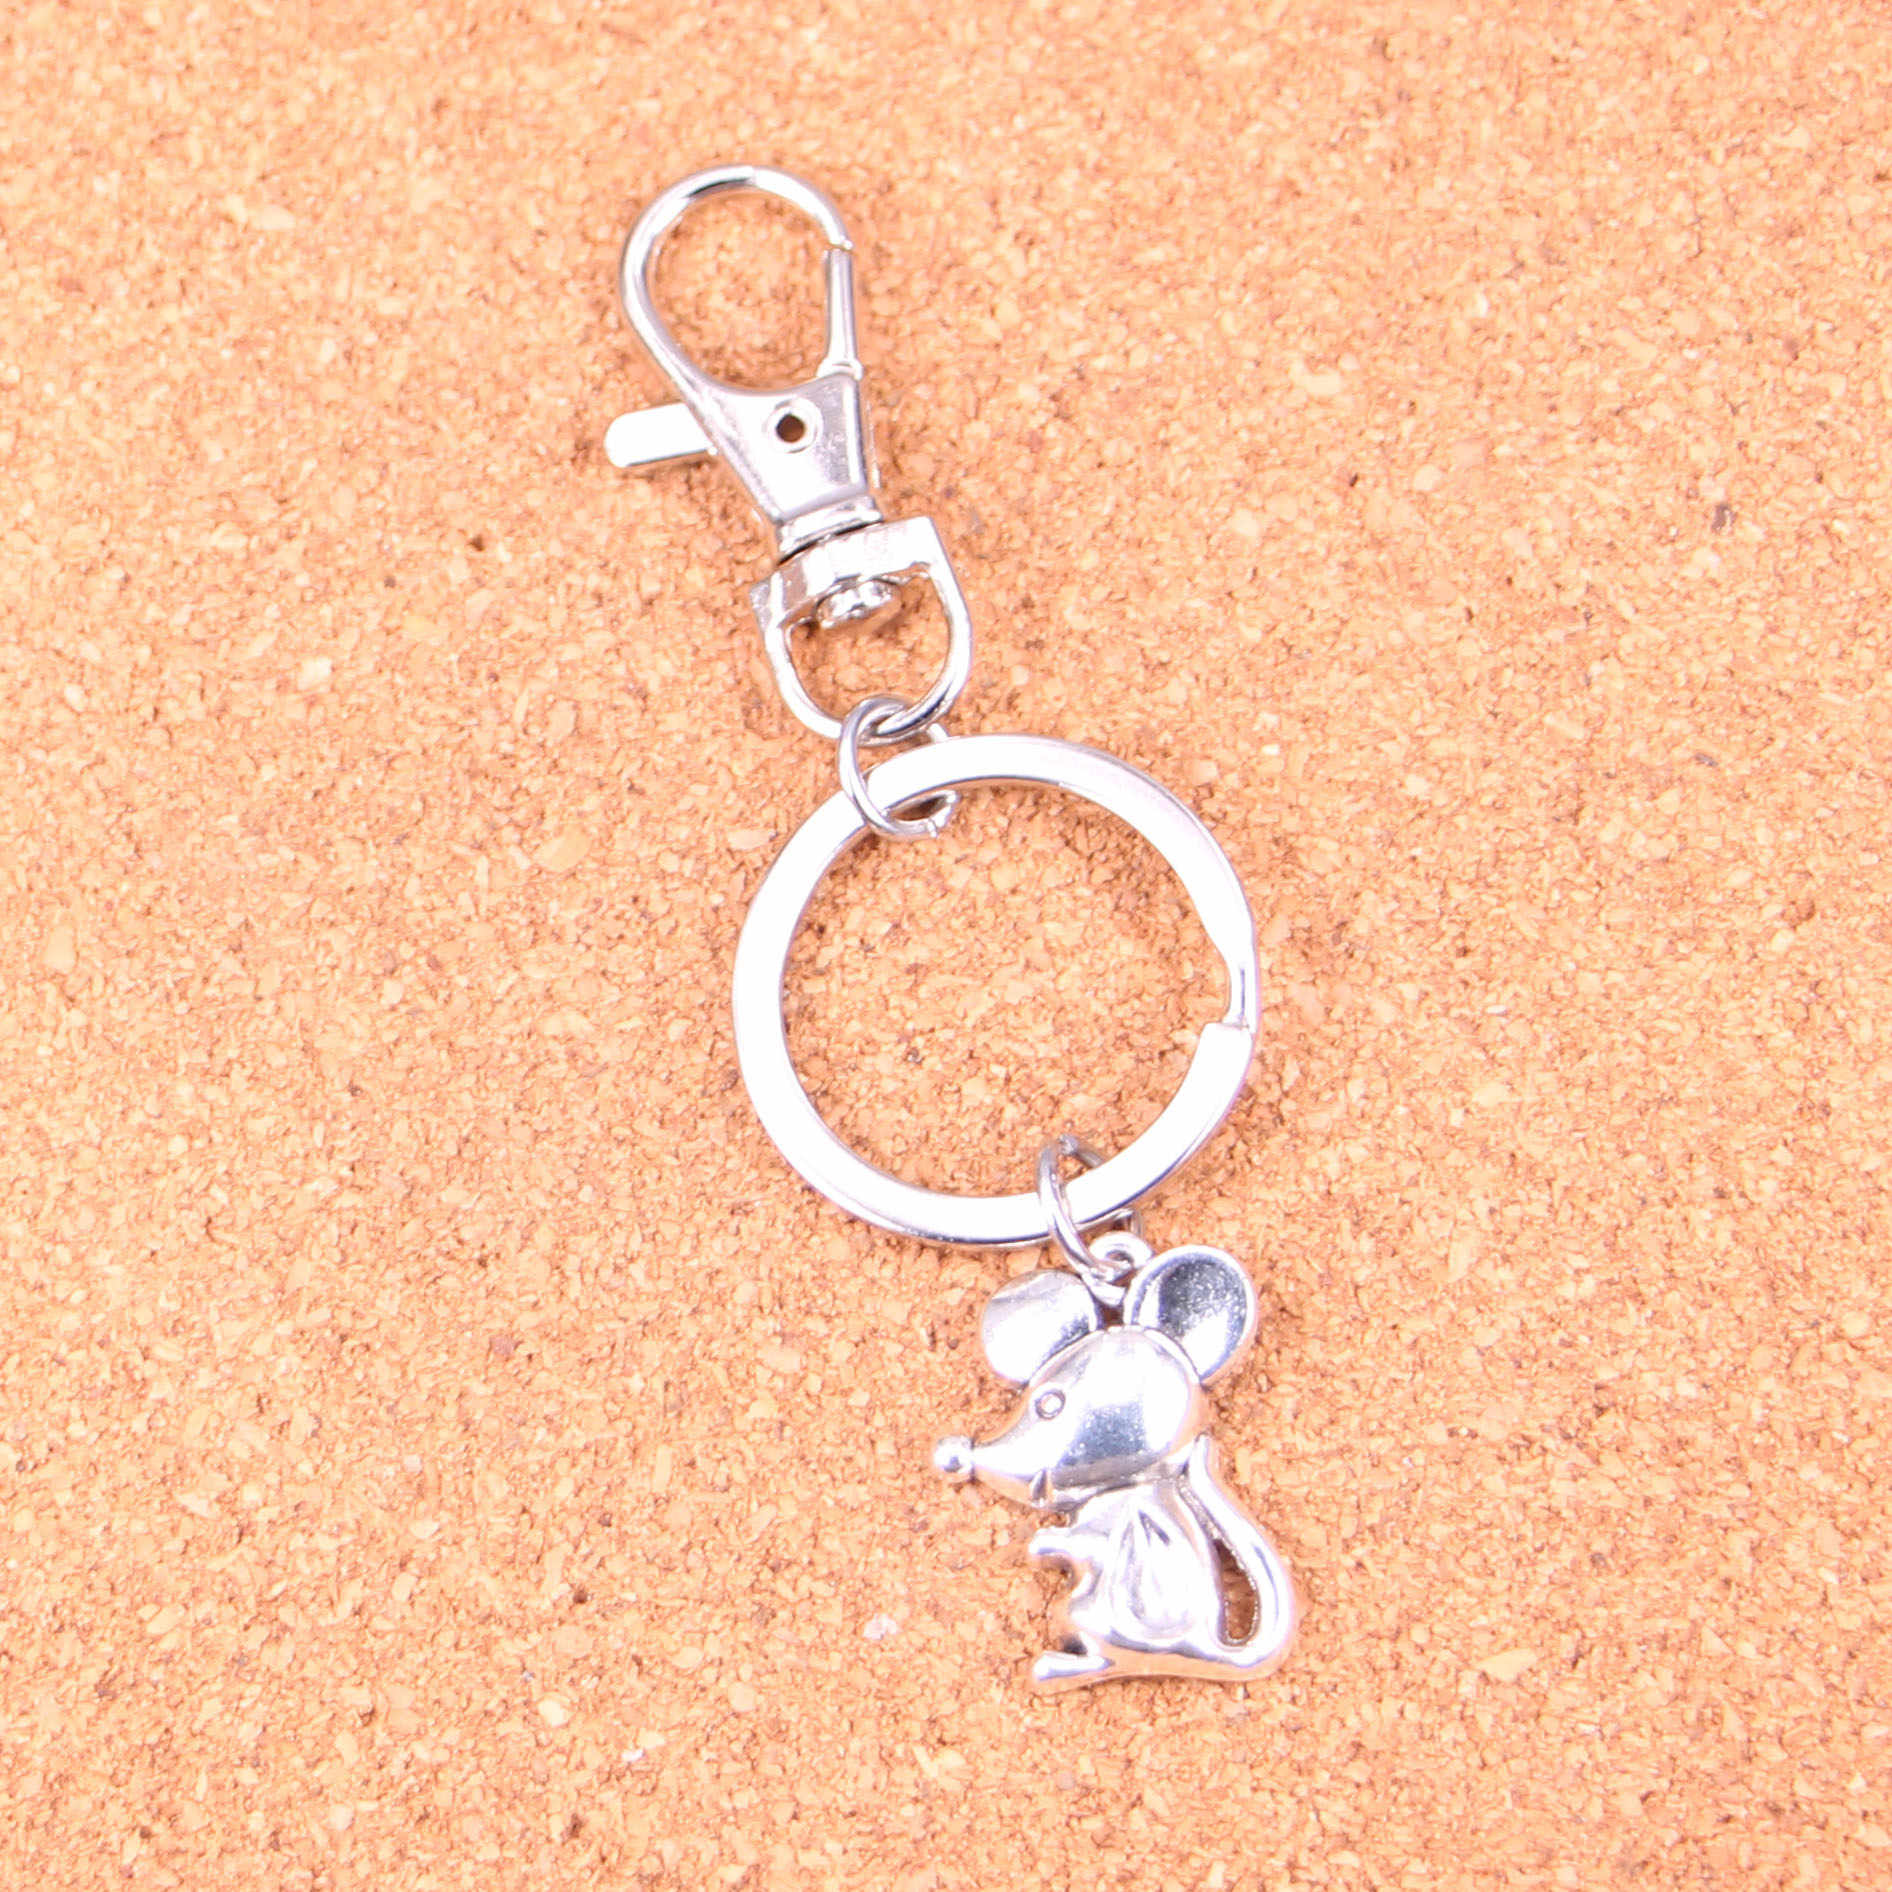 Mouse Keychain Silver Swivel Lobster Clasp Clips Handbag Car Charms Jewelry For Key Chain Trinket Jewelry Gift